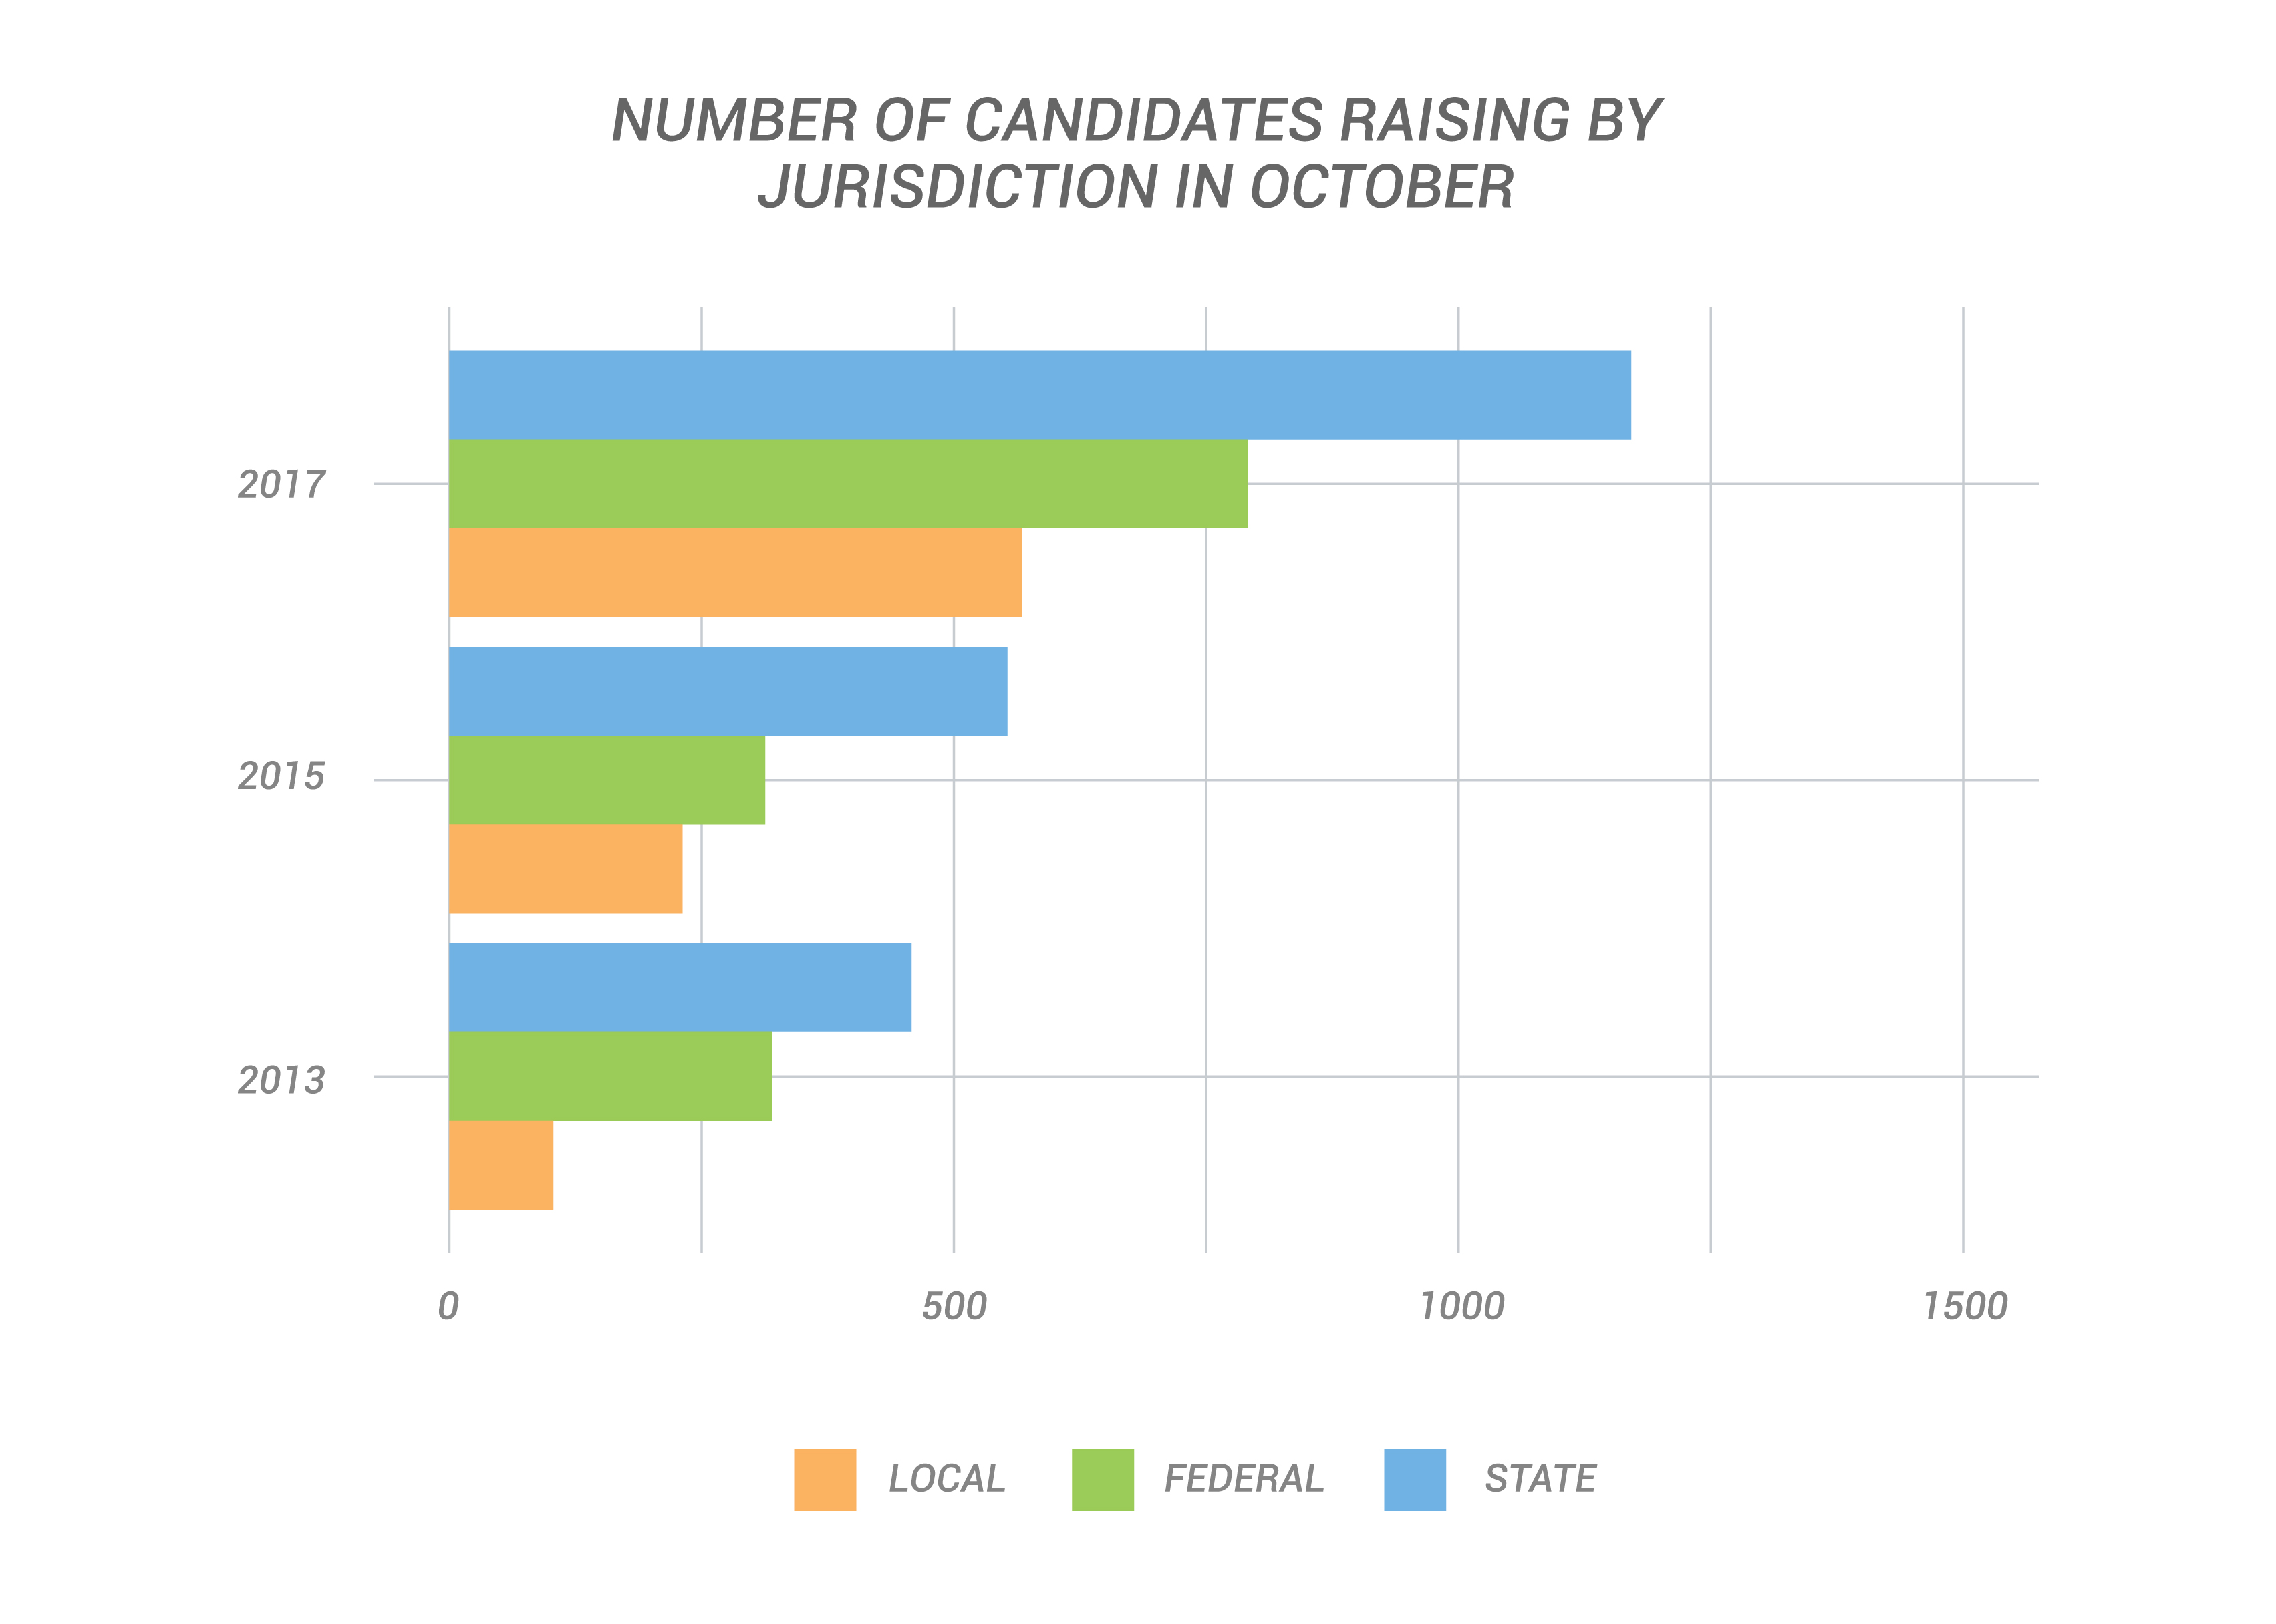 Number of Candidates Raising by Jurisdiction in October